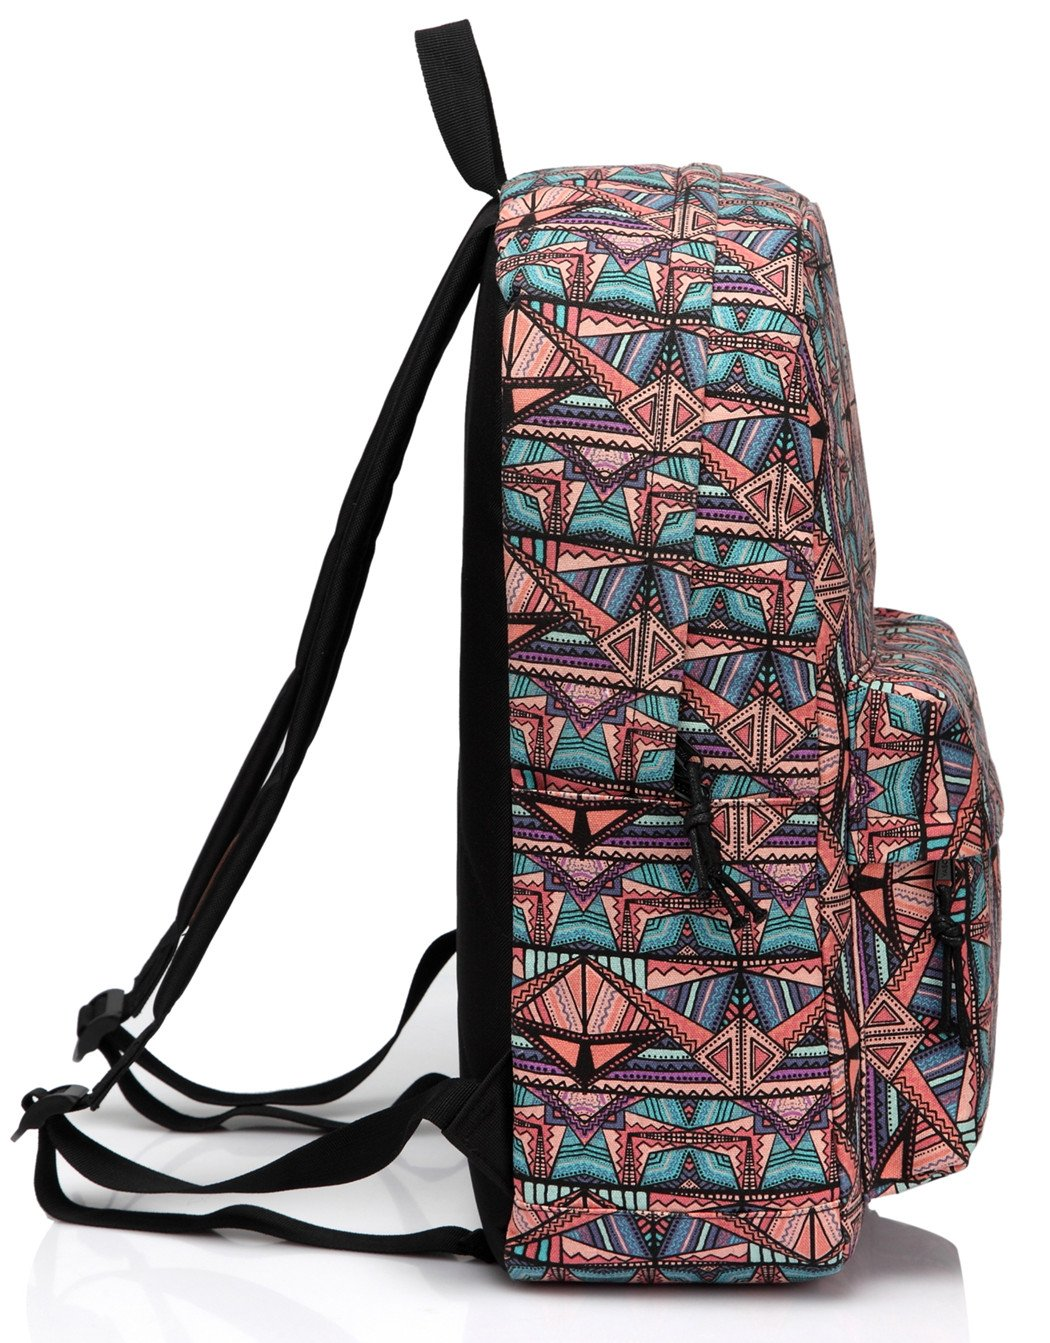 School Backpack for Teen Girls,Fashion Canvas Rucksack BookBag with Padded Laptop Sleeve by Vaschy (Image #5)